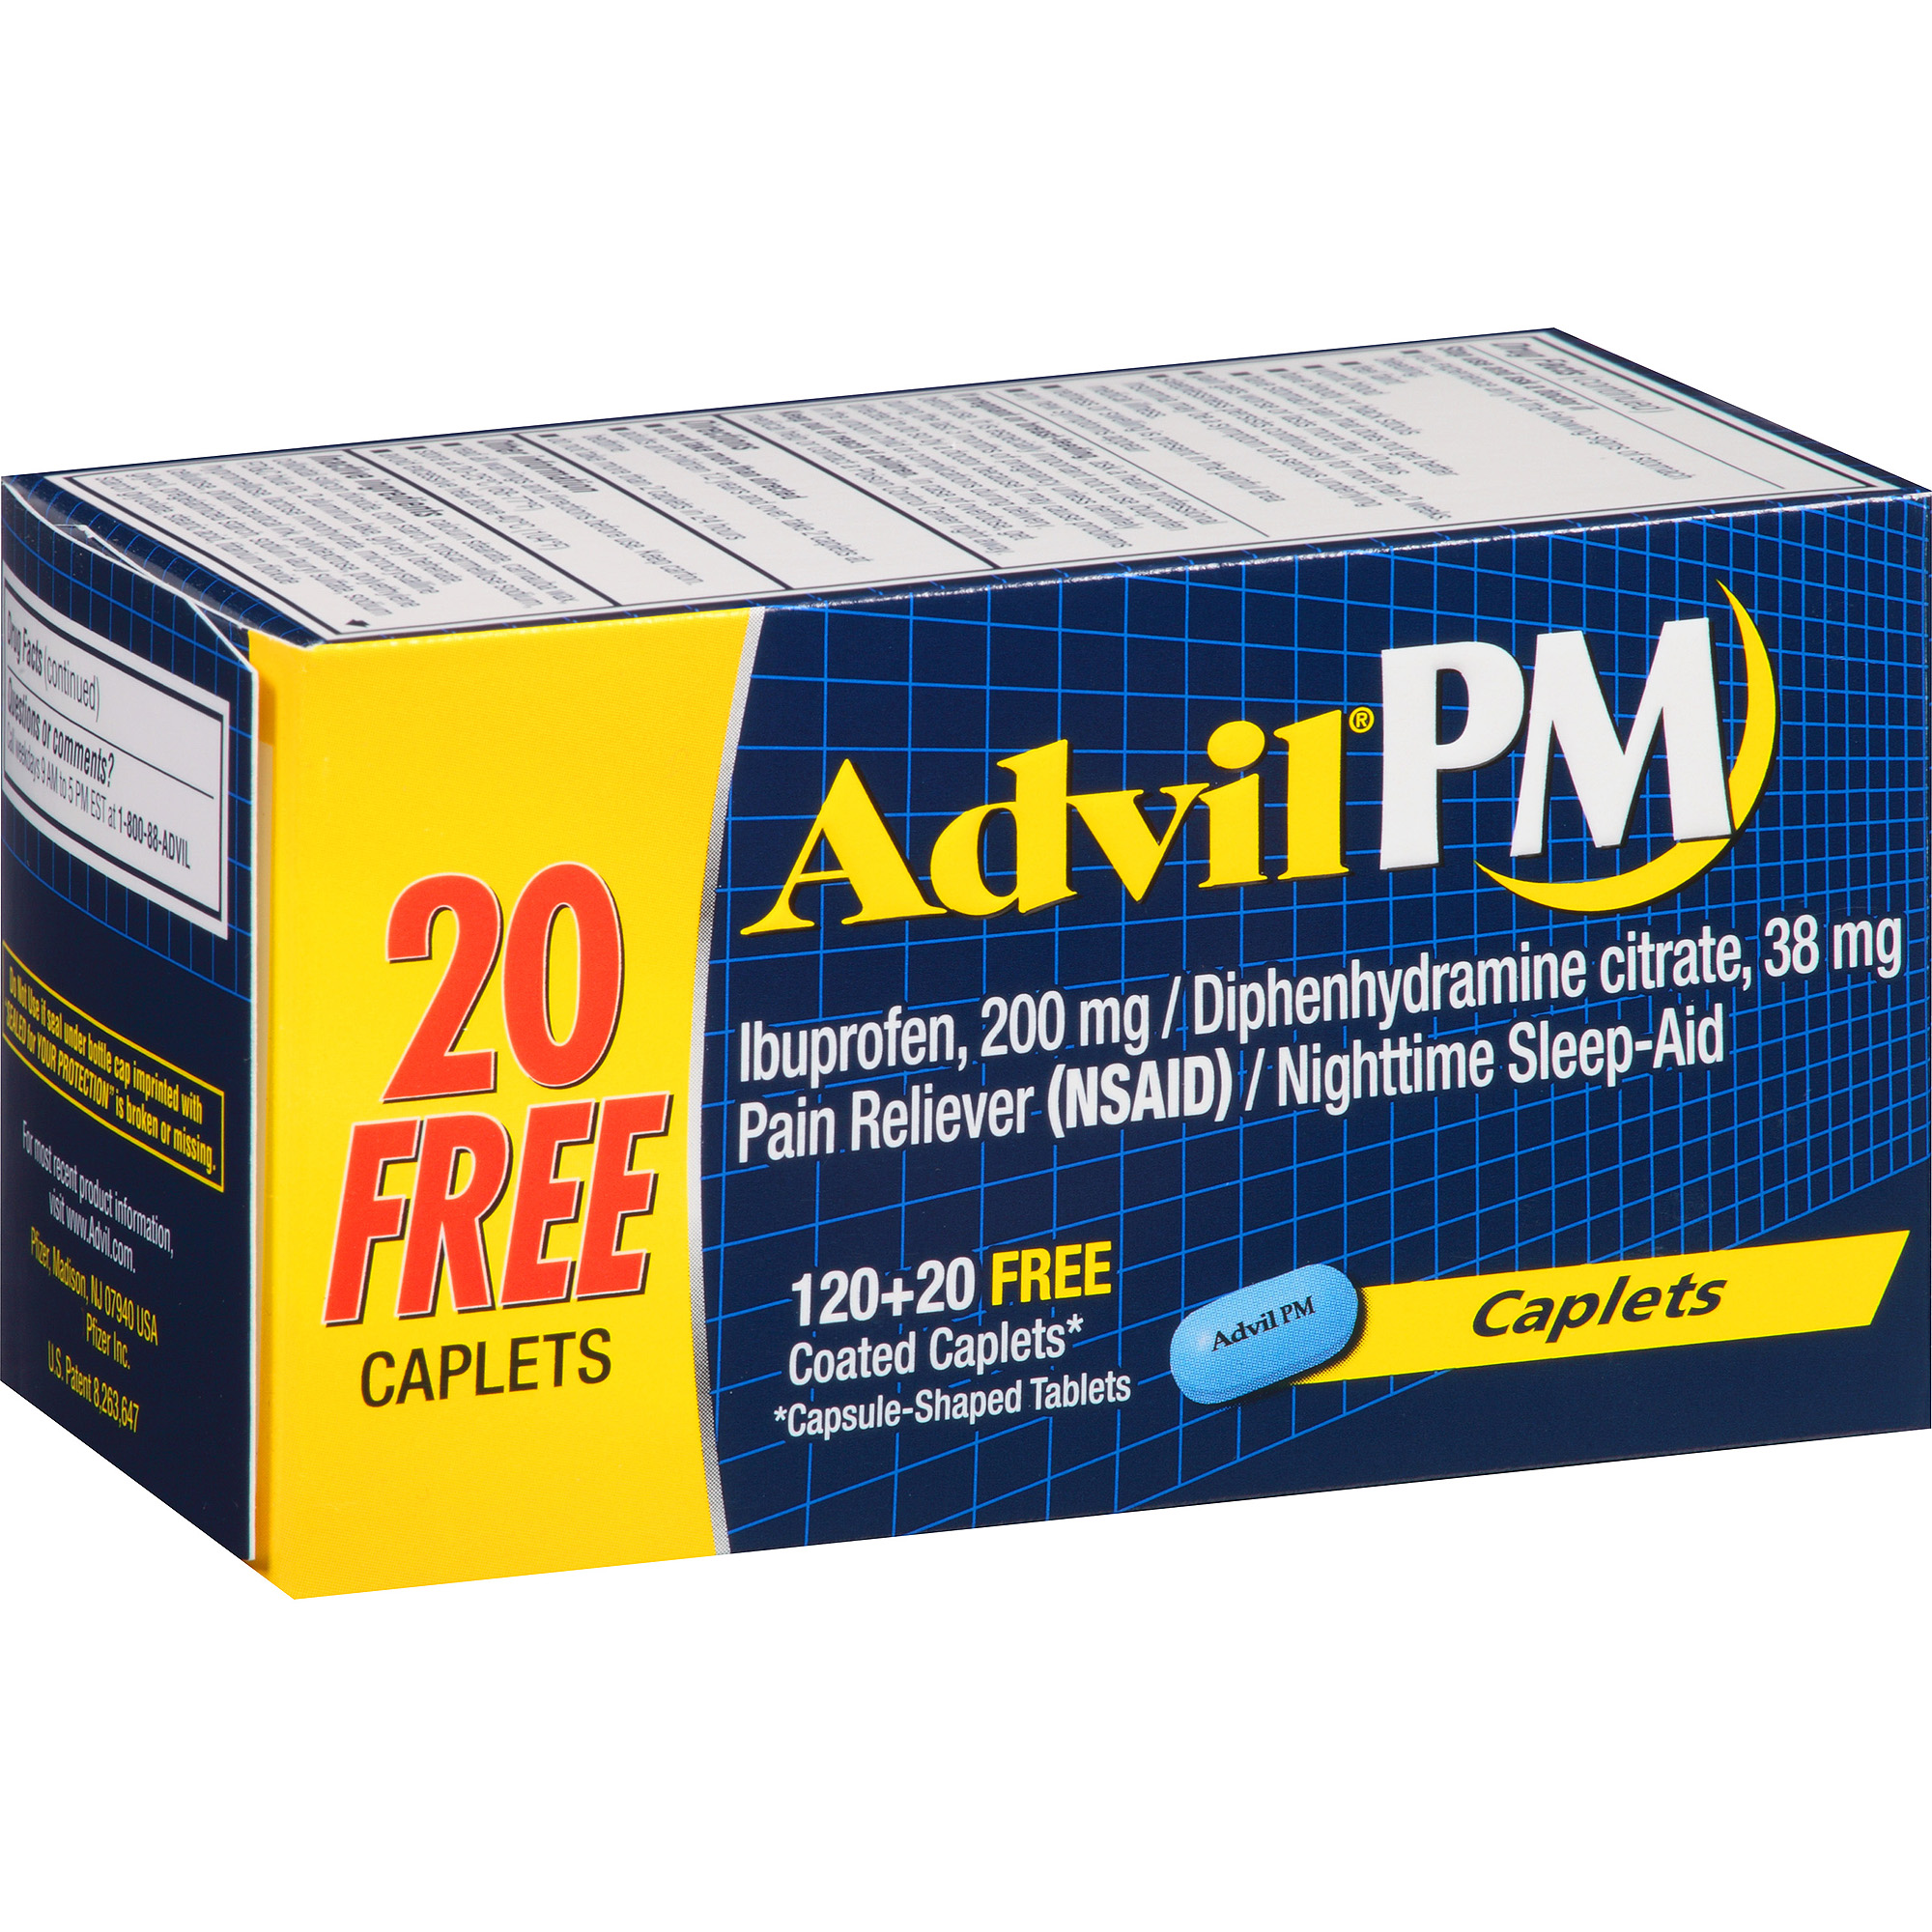 Advil PM (140 Count) Pain Reliever / Nighttime Sleep Aid Caplet, 200mg Ibuprofen, 38mg Diphenhydramine